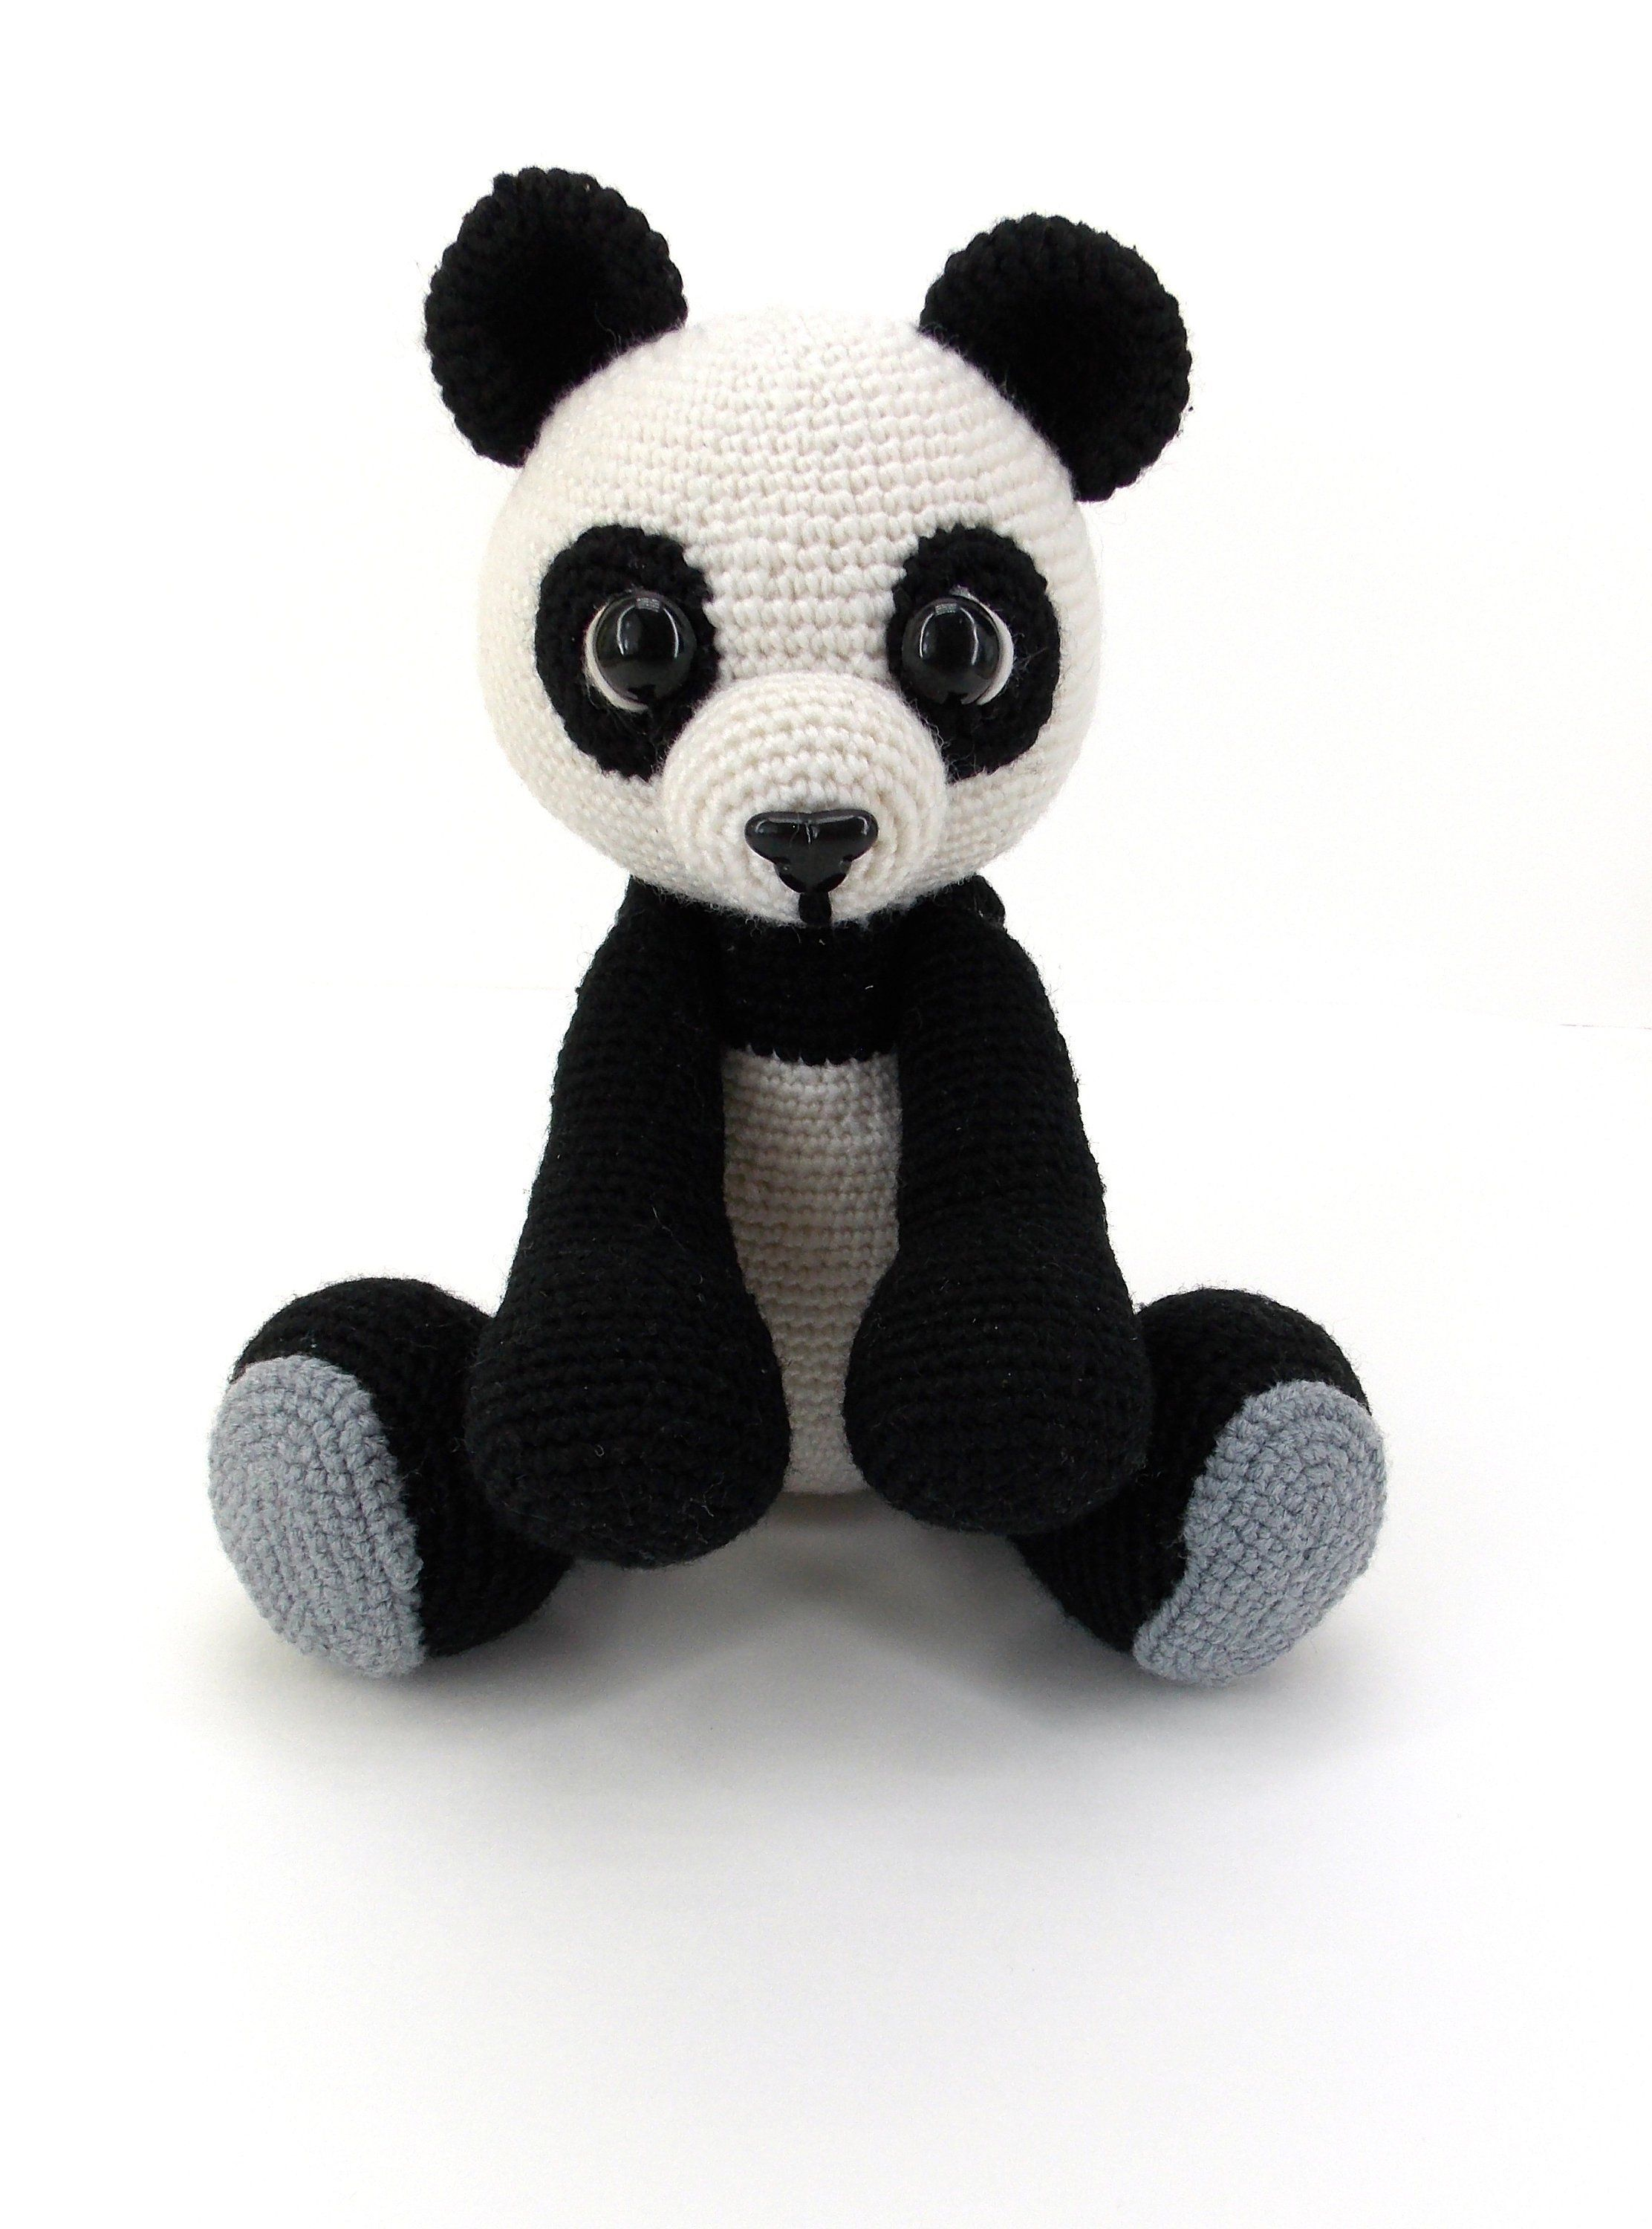 Crochet panda. Black and white teddy bear. Knitted toy bear. A birthday present for a child. A gift to her sister for mother's day. Big toy.-#Bear #big #birthday #black #child #crochet #Day #gift #knitted #Mothers #panda #present #sister #teddy #Toy #white #crochetbear